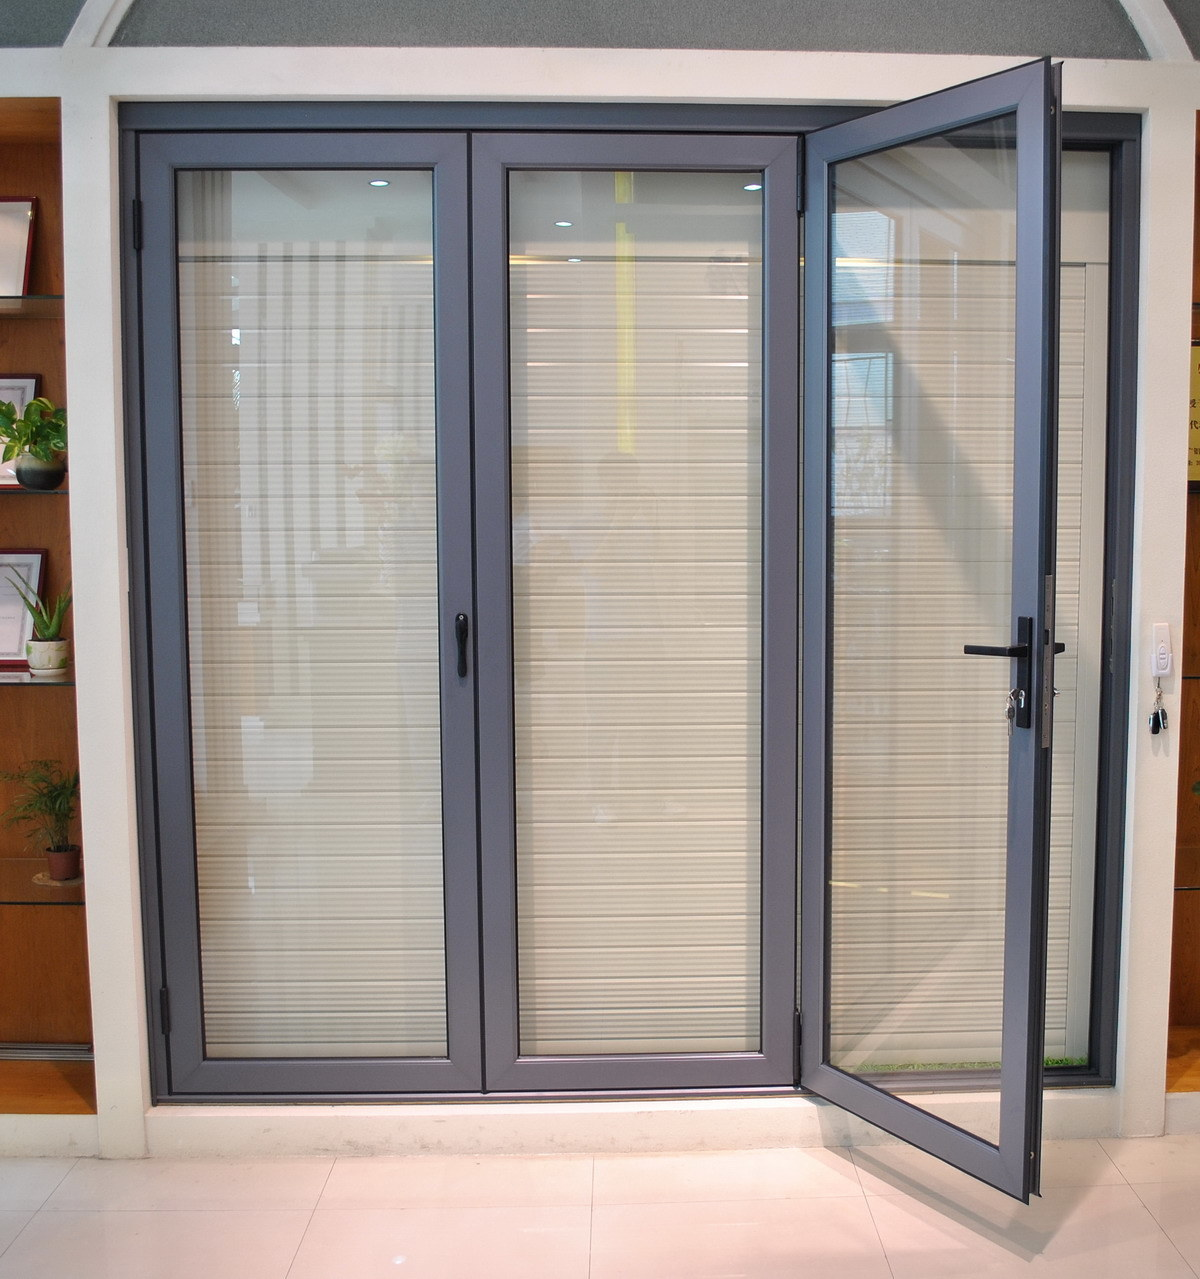 Folding doors aluminium bi folding doors prices for Aluminum sliding glass doors price